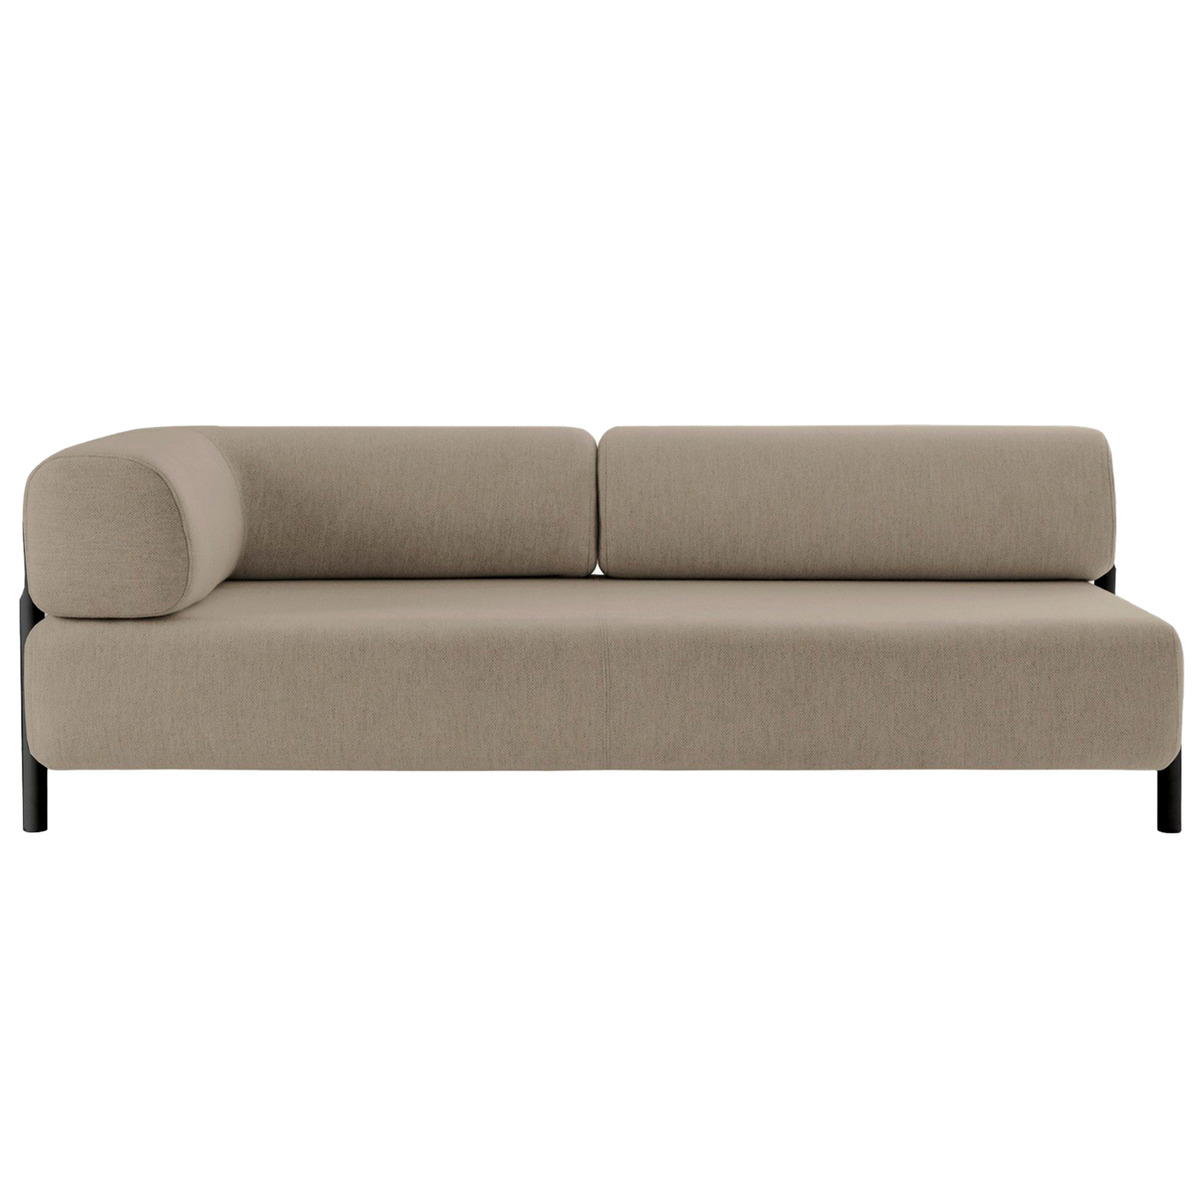 Hem Palo 2 Seater Chaise Left Beige Finnish Design Shop